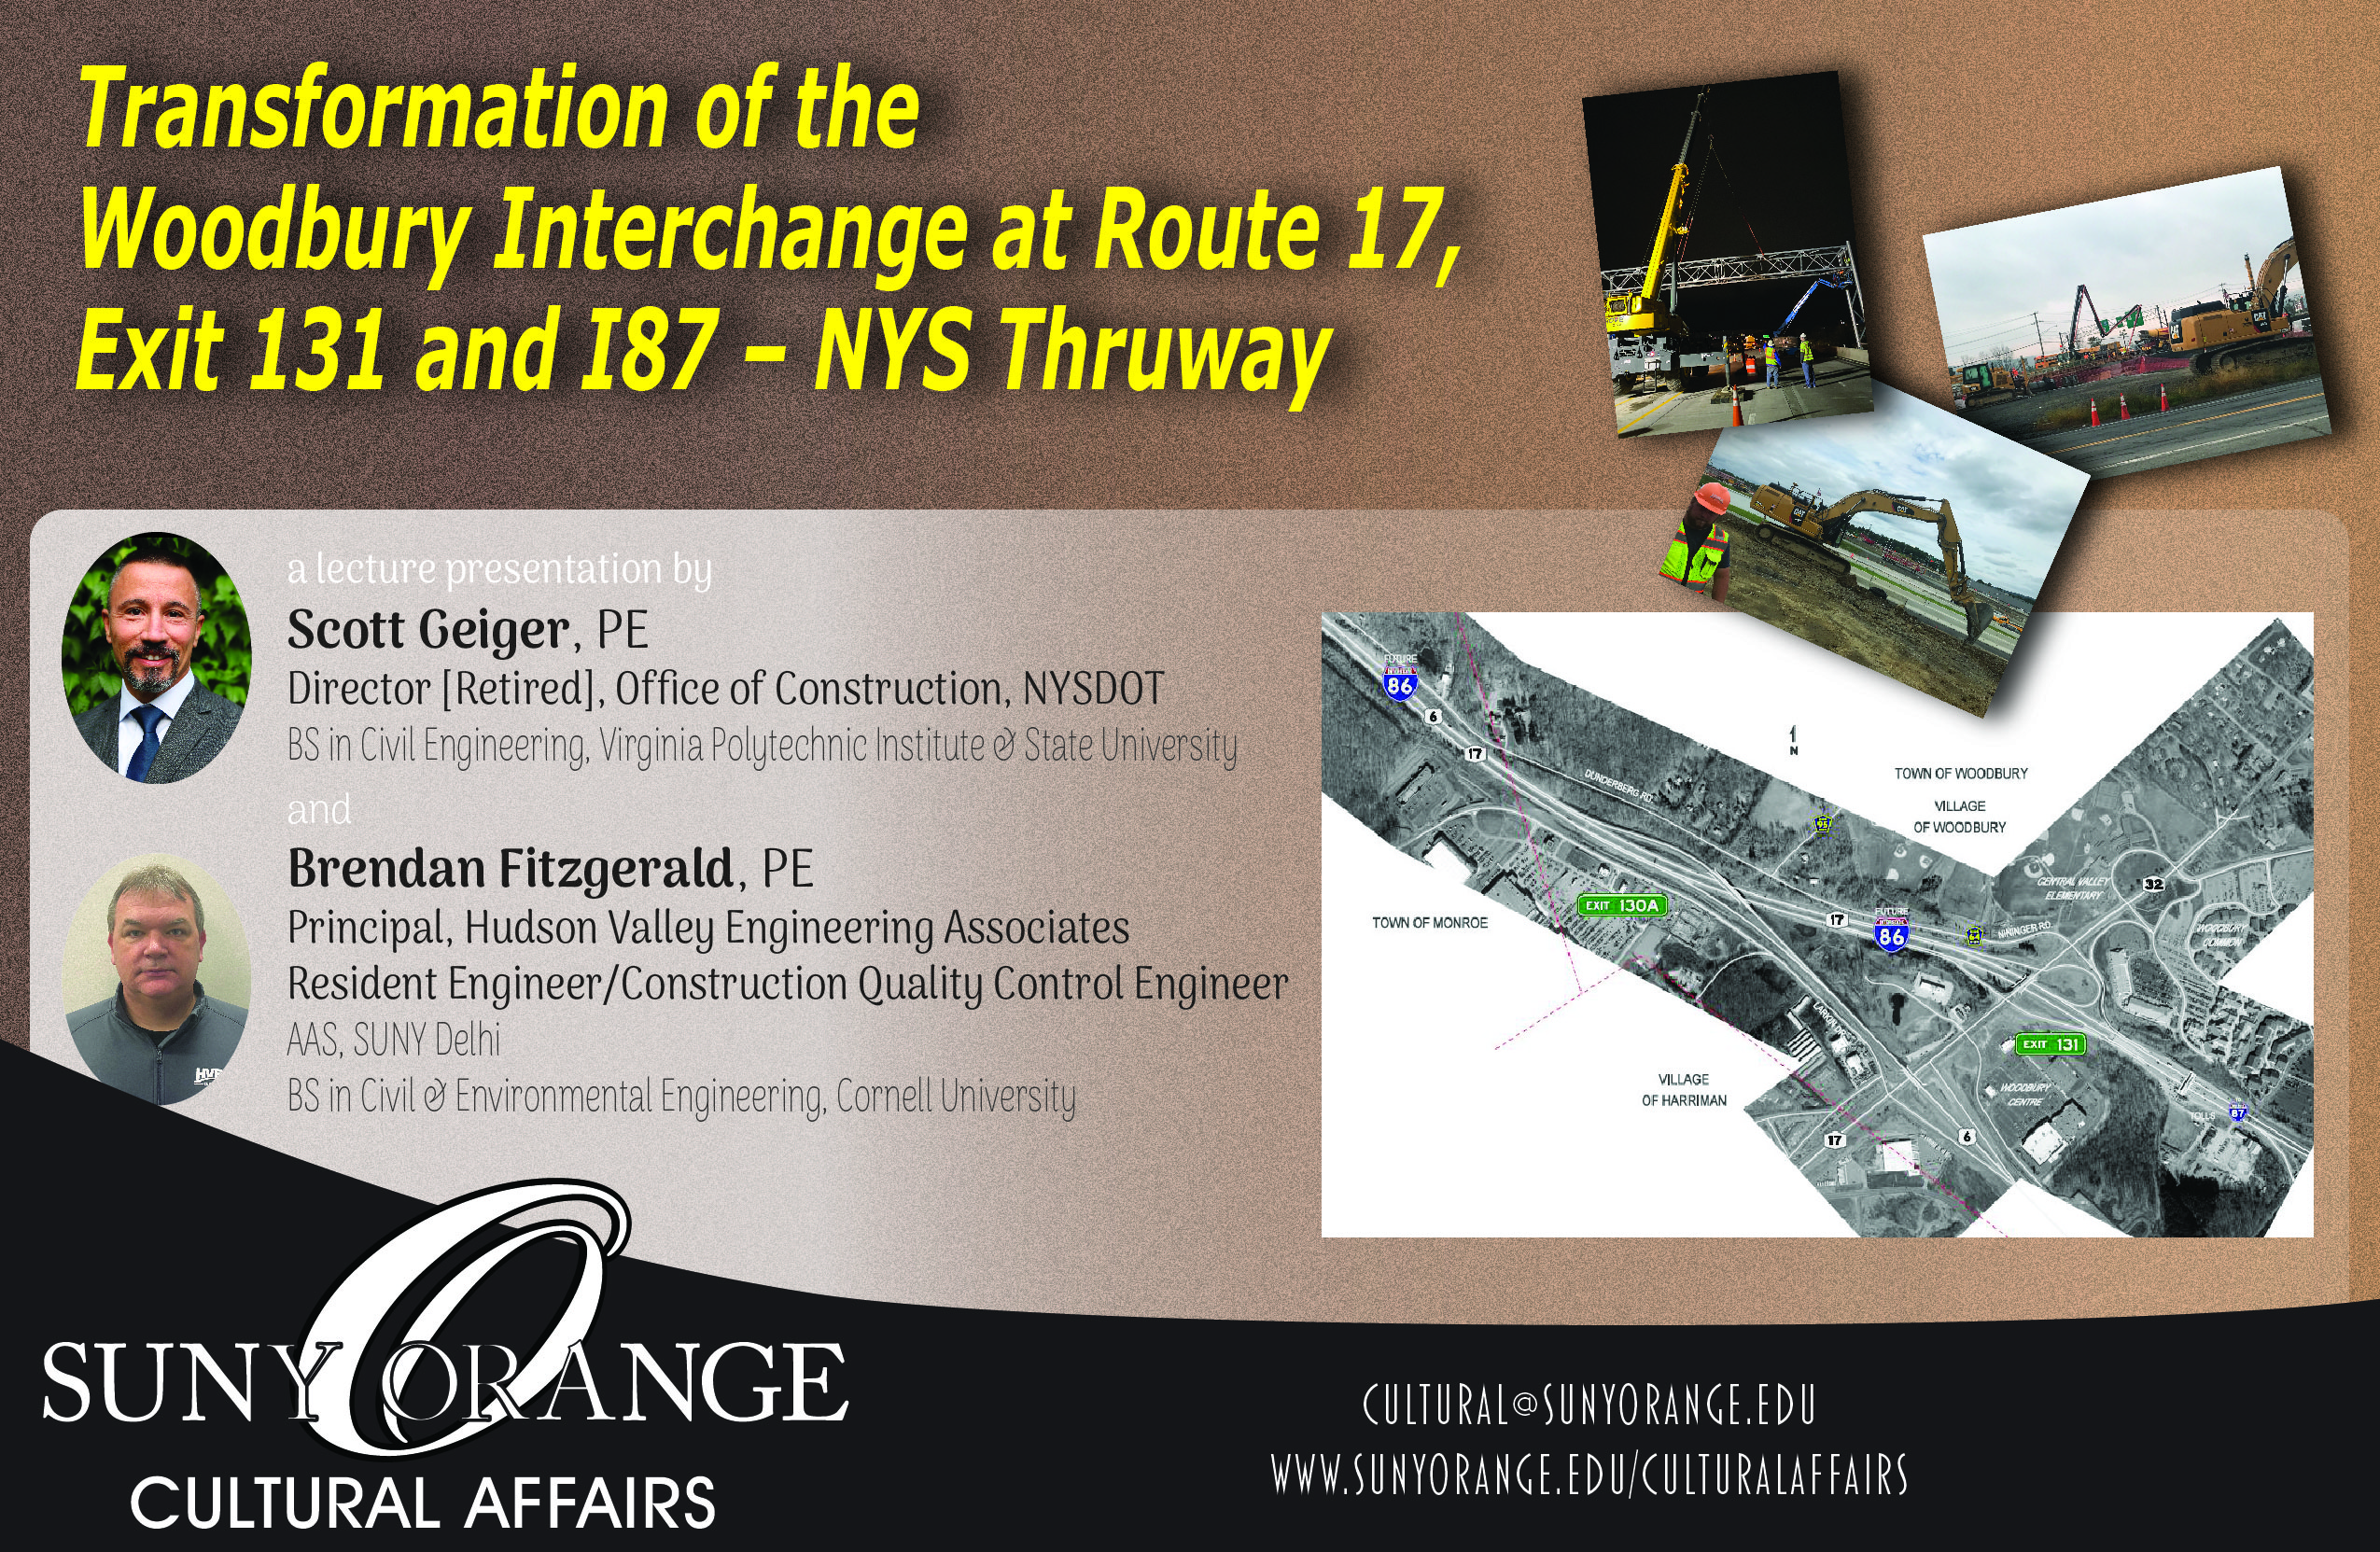 Transformation of the Woodbury Interchange at Route 17, Exit 131 and I87 - NYS Thruway